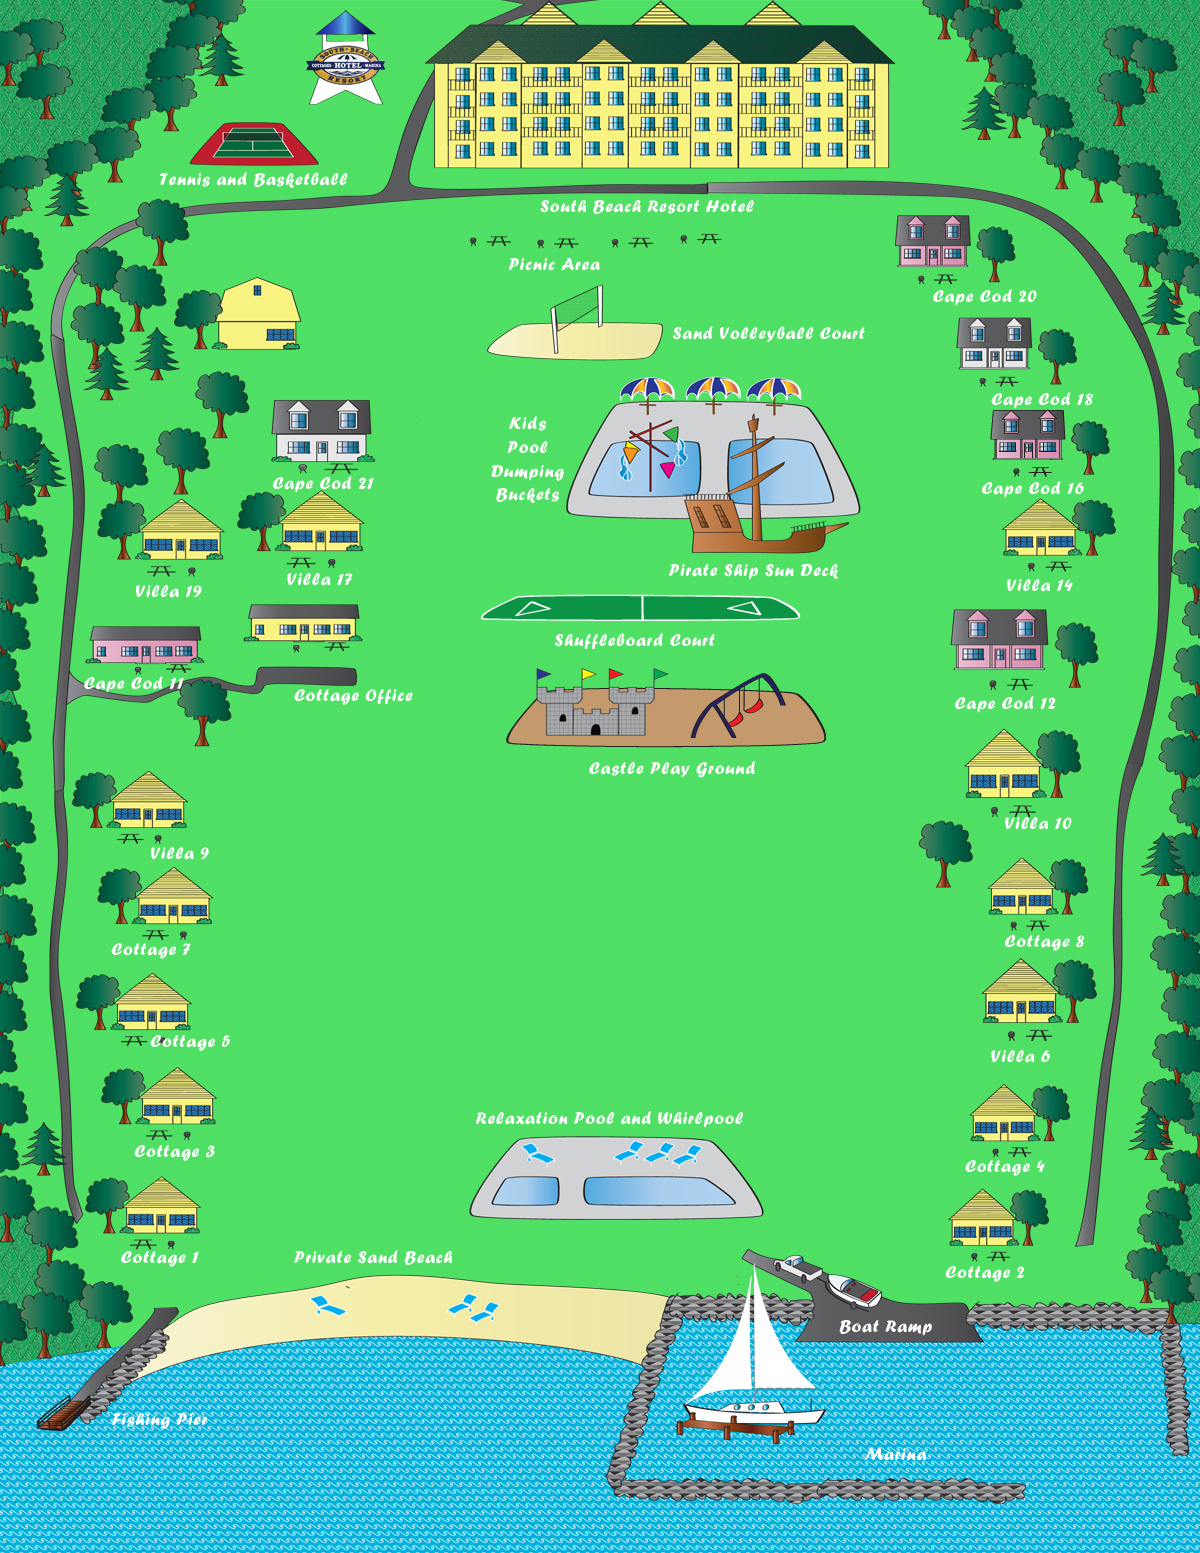 resort map. south beach resort is ideal for family vacations and romantic